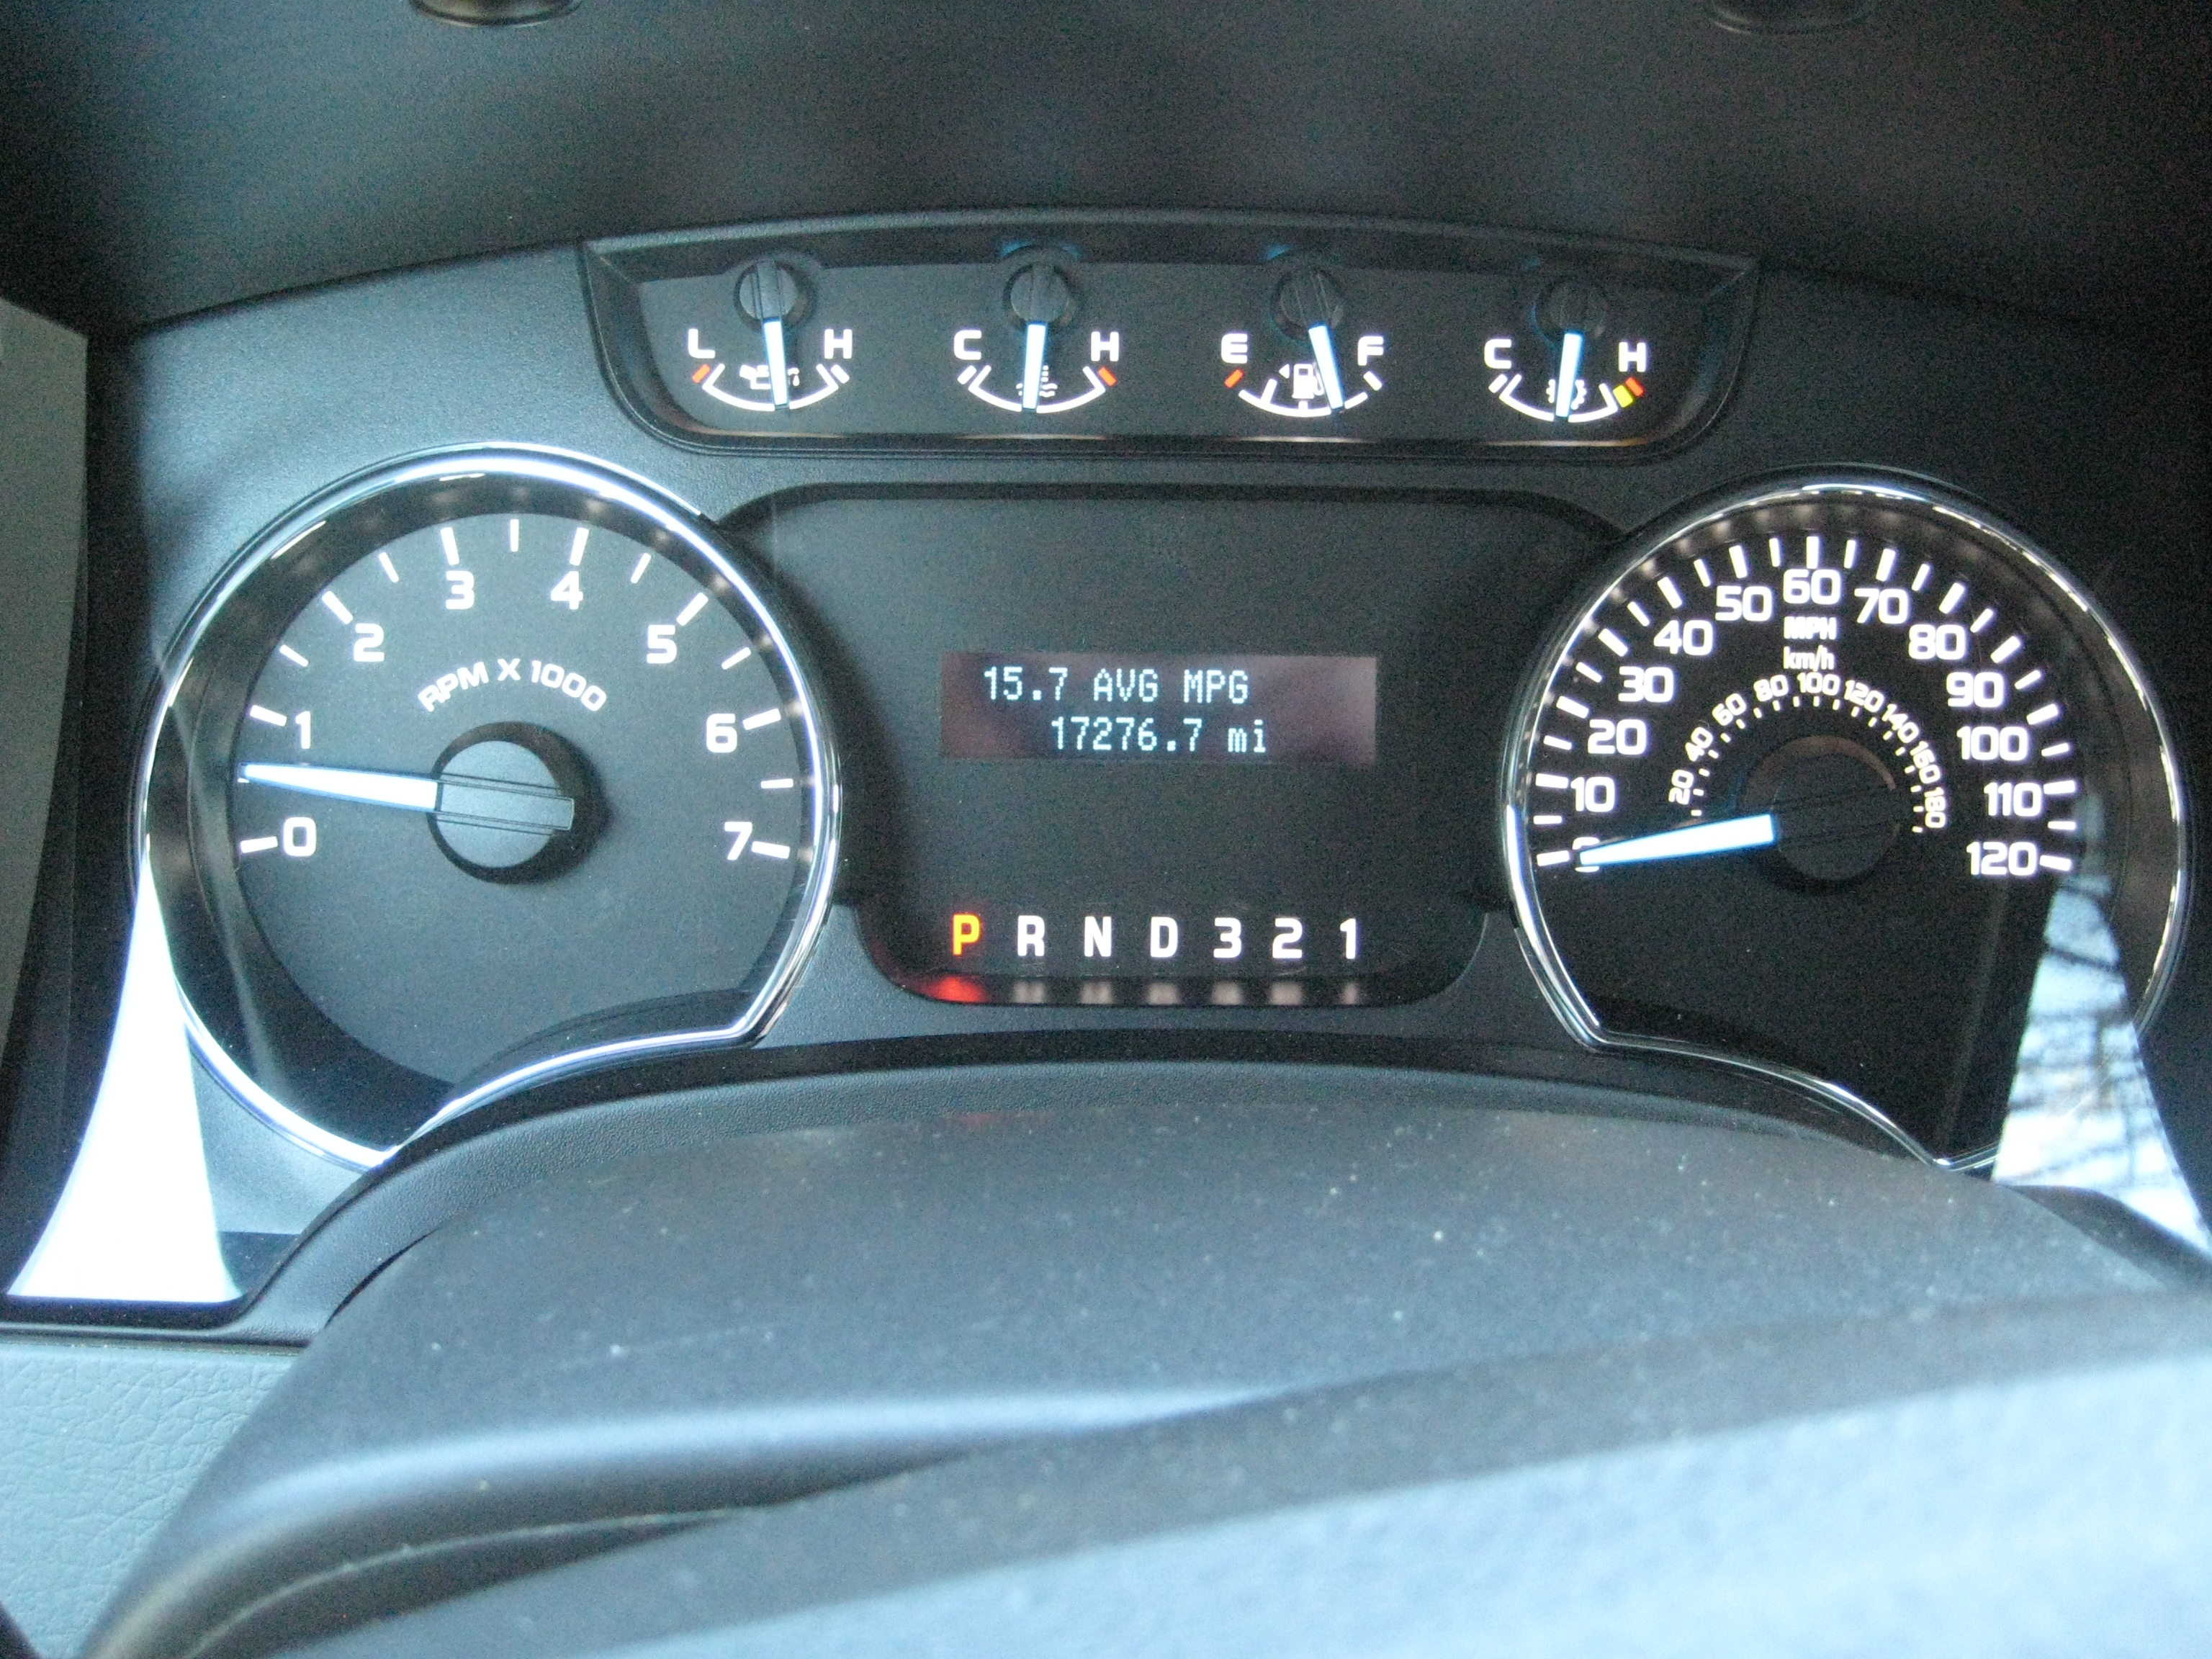 2012 Ford F 150 XLT Instrument Cluster review 2012 ford f 150 xlt road reality  at mifinder.co